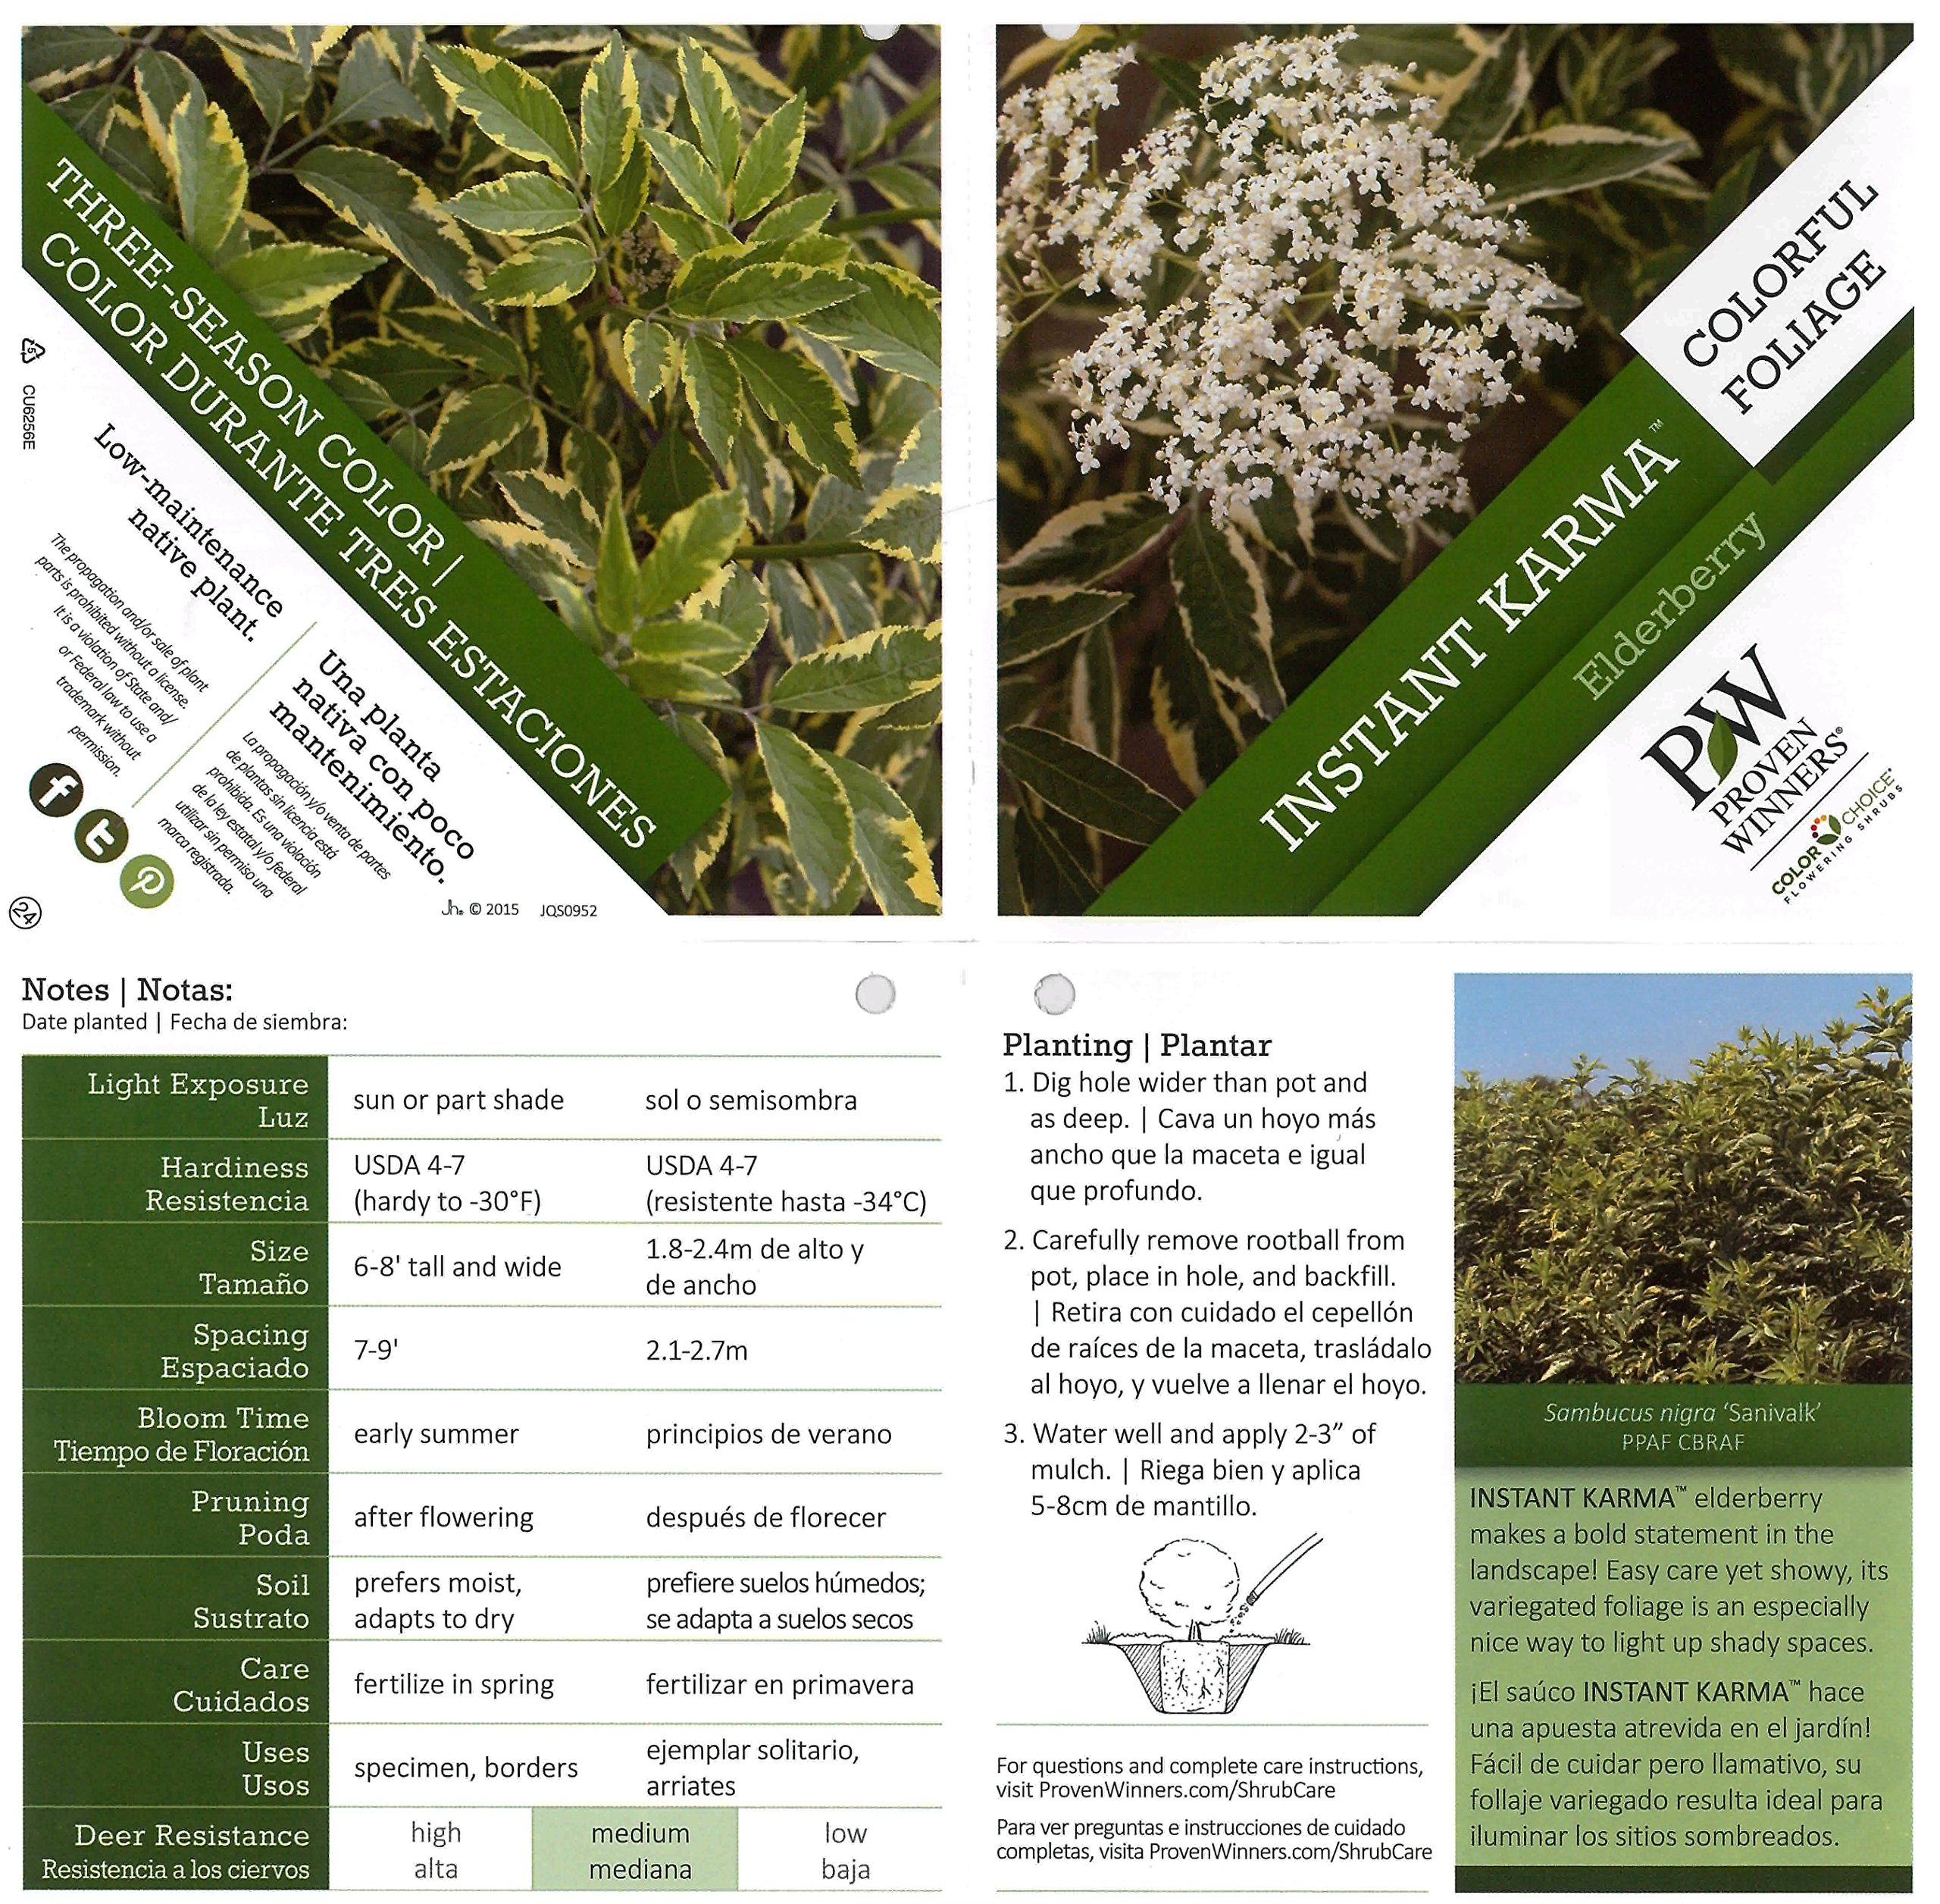 Instant Karma Elderberry (Sambucus) Live Shrub, White Flowers and Variegated Foliage, 1 Gallon by Proven Winners (Image #3)